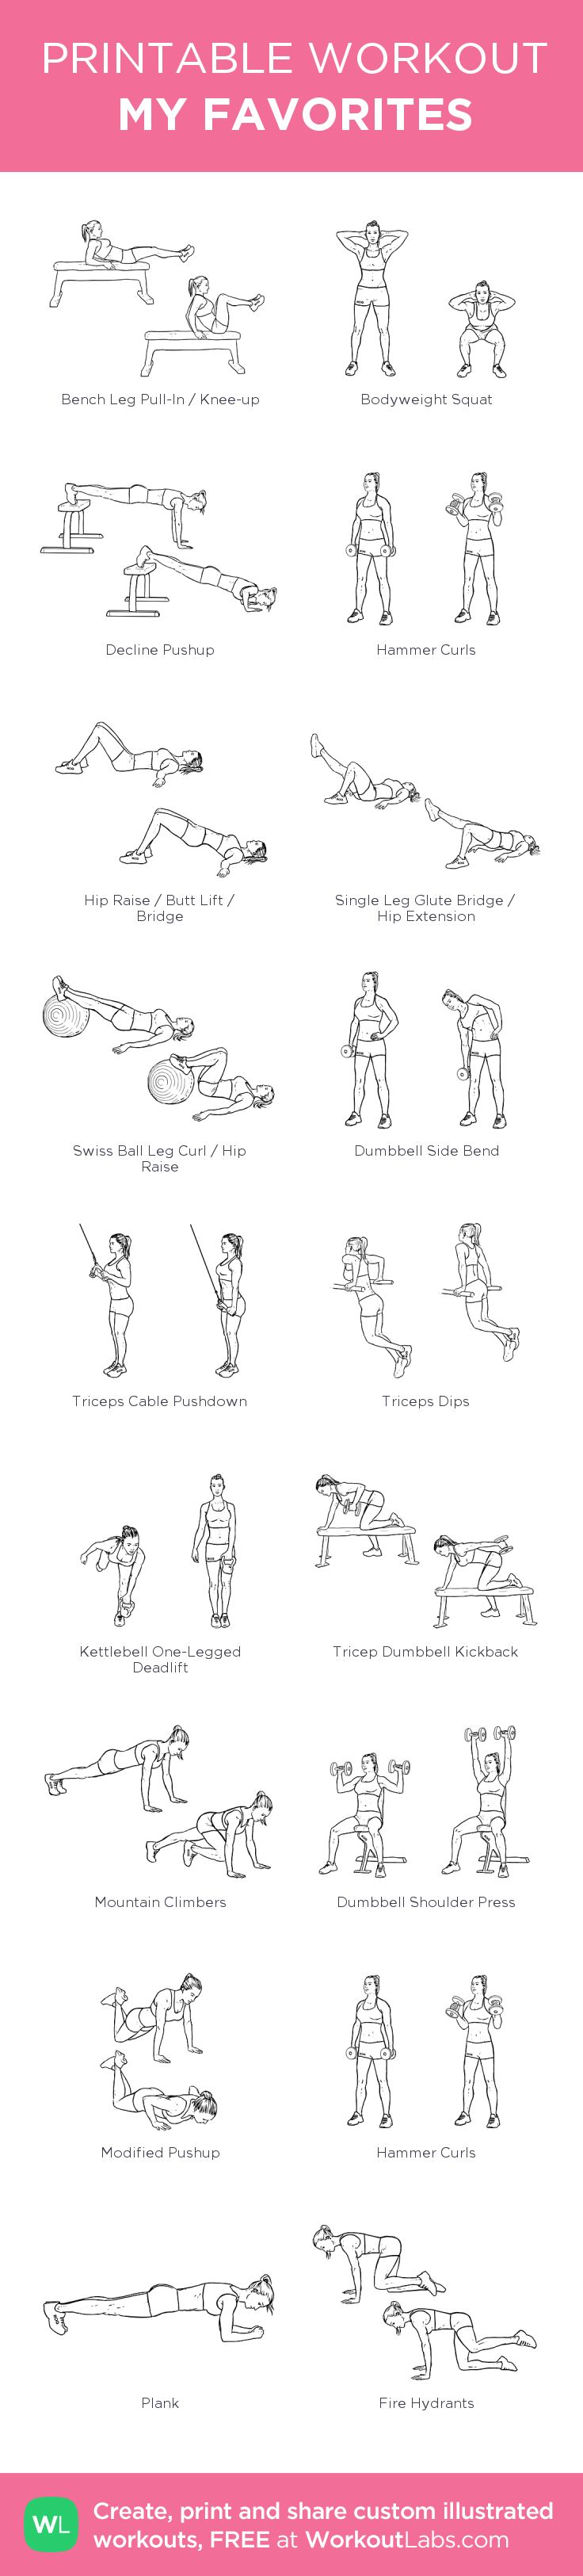 MY FAVORITES - WORKOUT LABS WORKOUTS:my custom printable workout by @WorkoutLabs #workoutlabs #customworkout